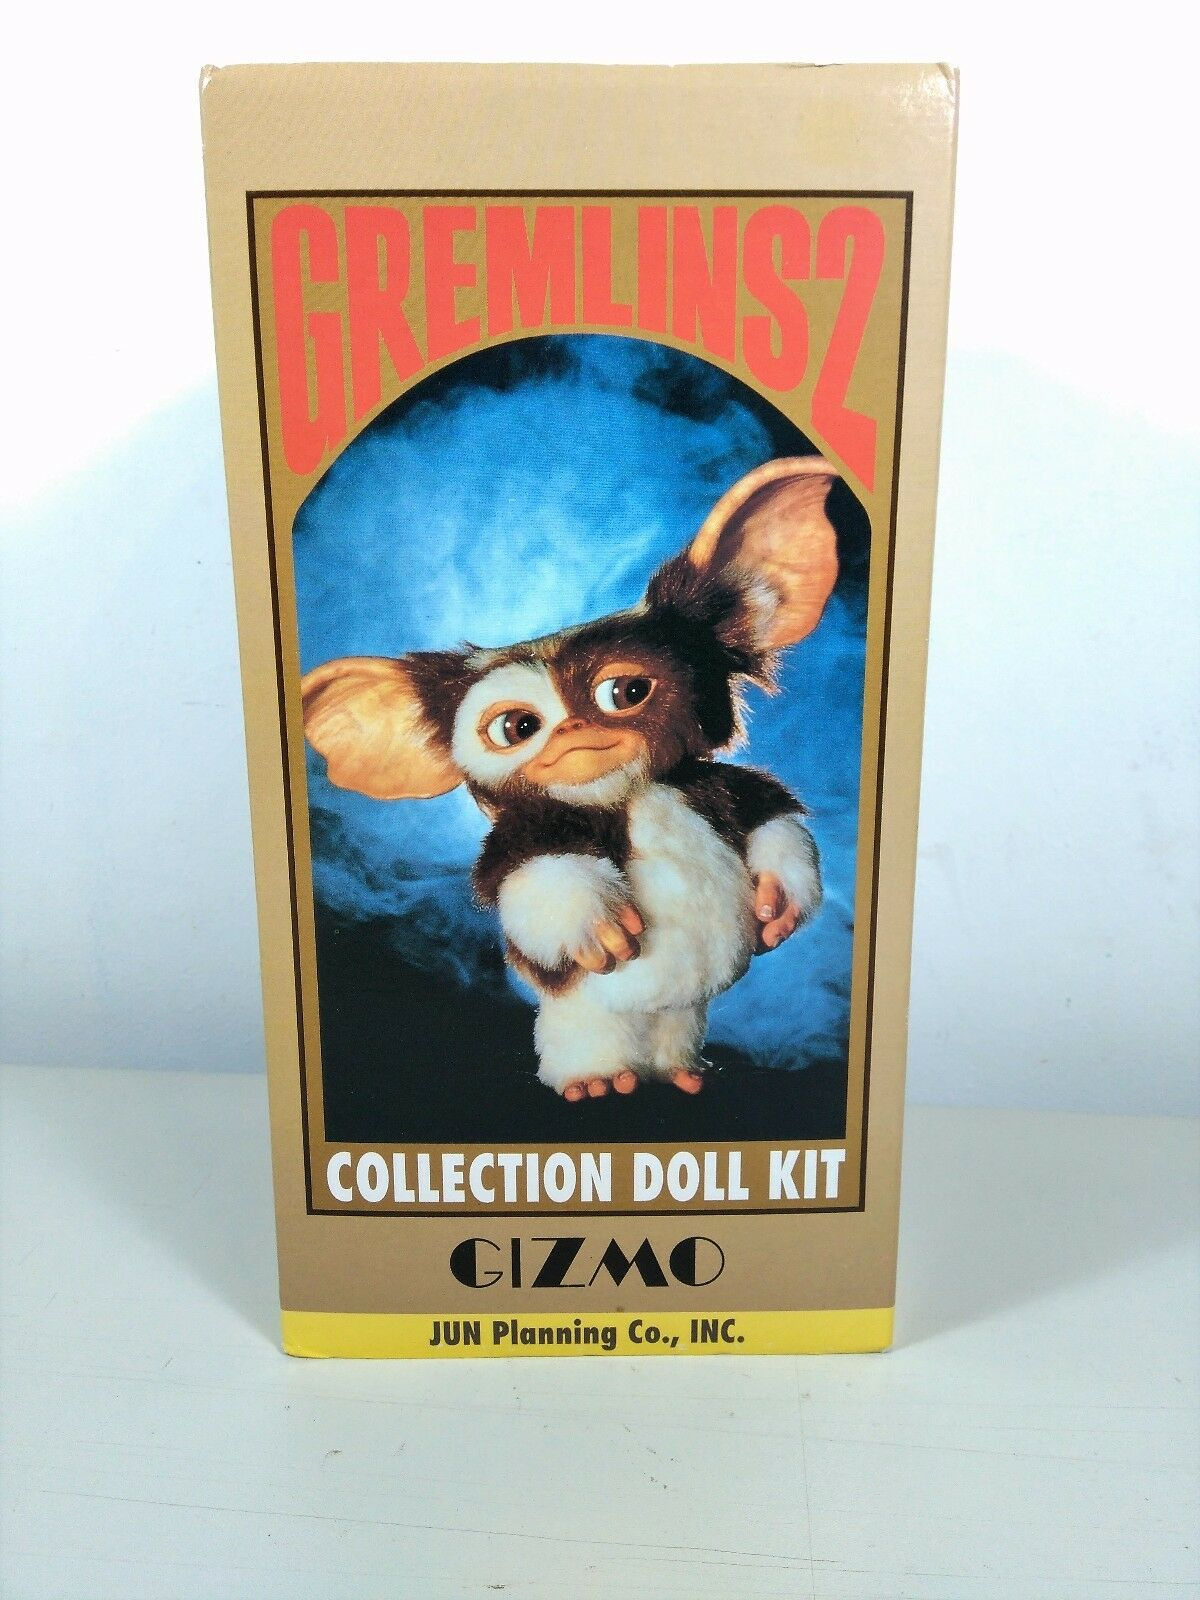 GREMLiNS 2  Gizmo C410 Collection Collection Collection Doll Kit  JUN PLANNING Rare Japanese 58dec9